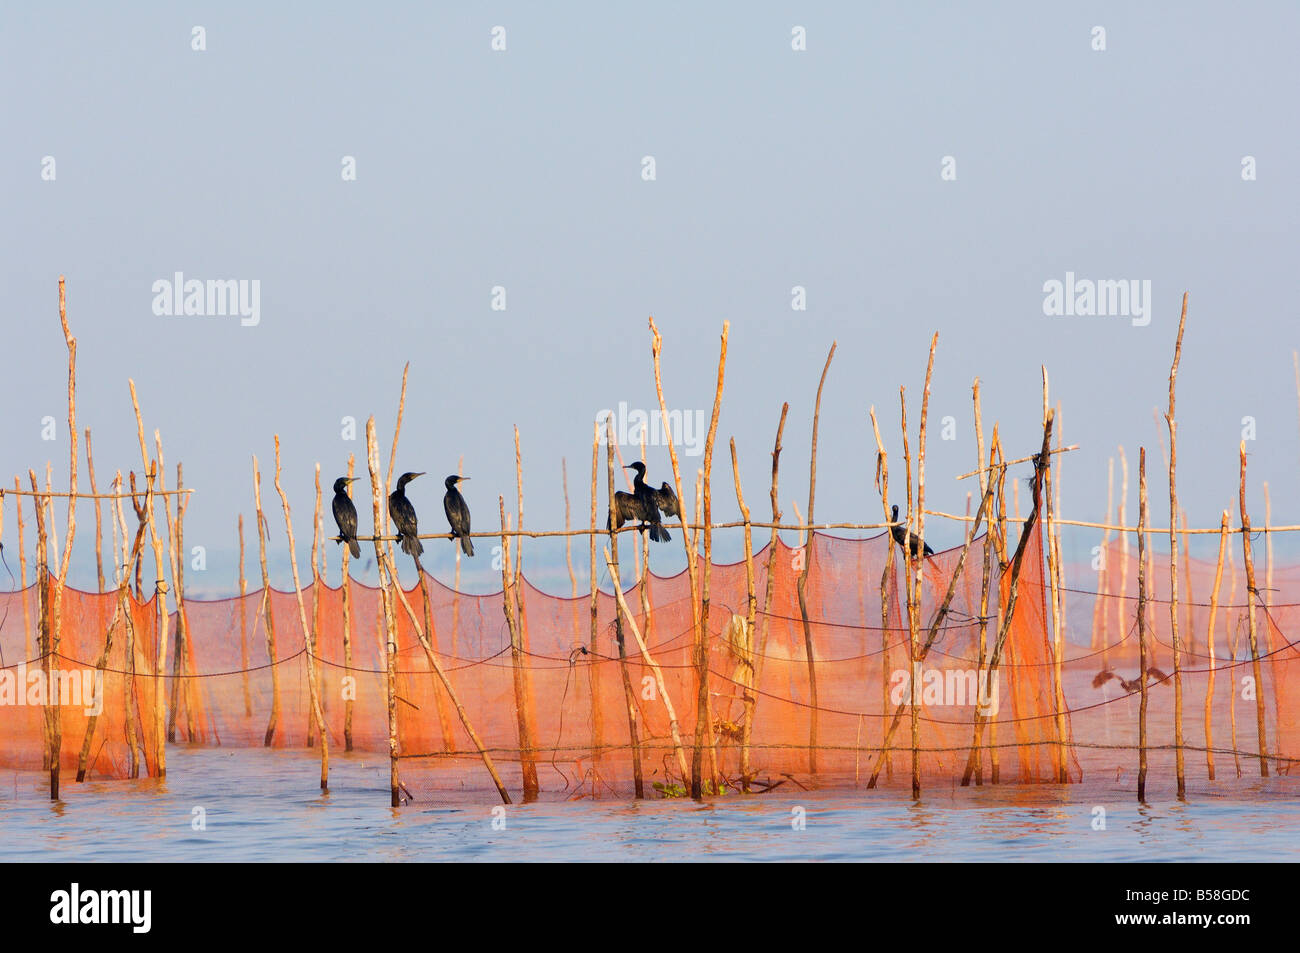 Cormorants and fishing nets, Tonle Sap Lake, Siem Reap, Cambodia, Indochina, Southeast Asia - Stock Image